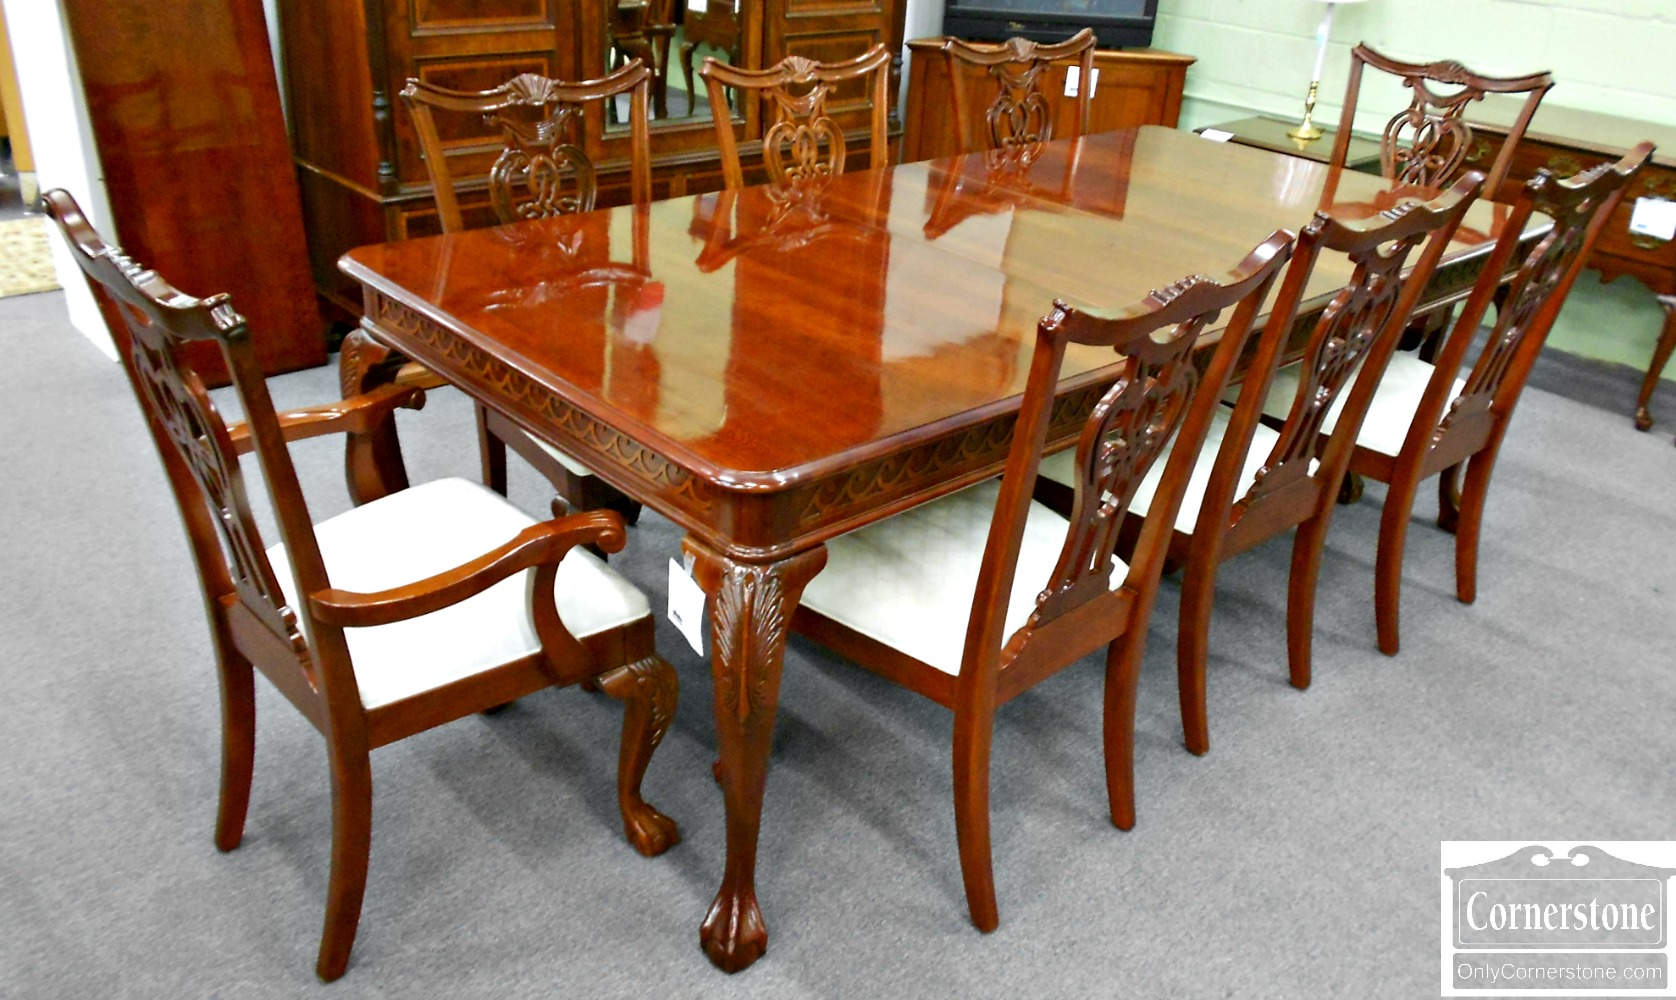 5670-633 Z Set of 8 PA House Solid Cherry Chippendale Ball & Claw Foot Dining Chairs